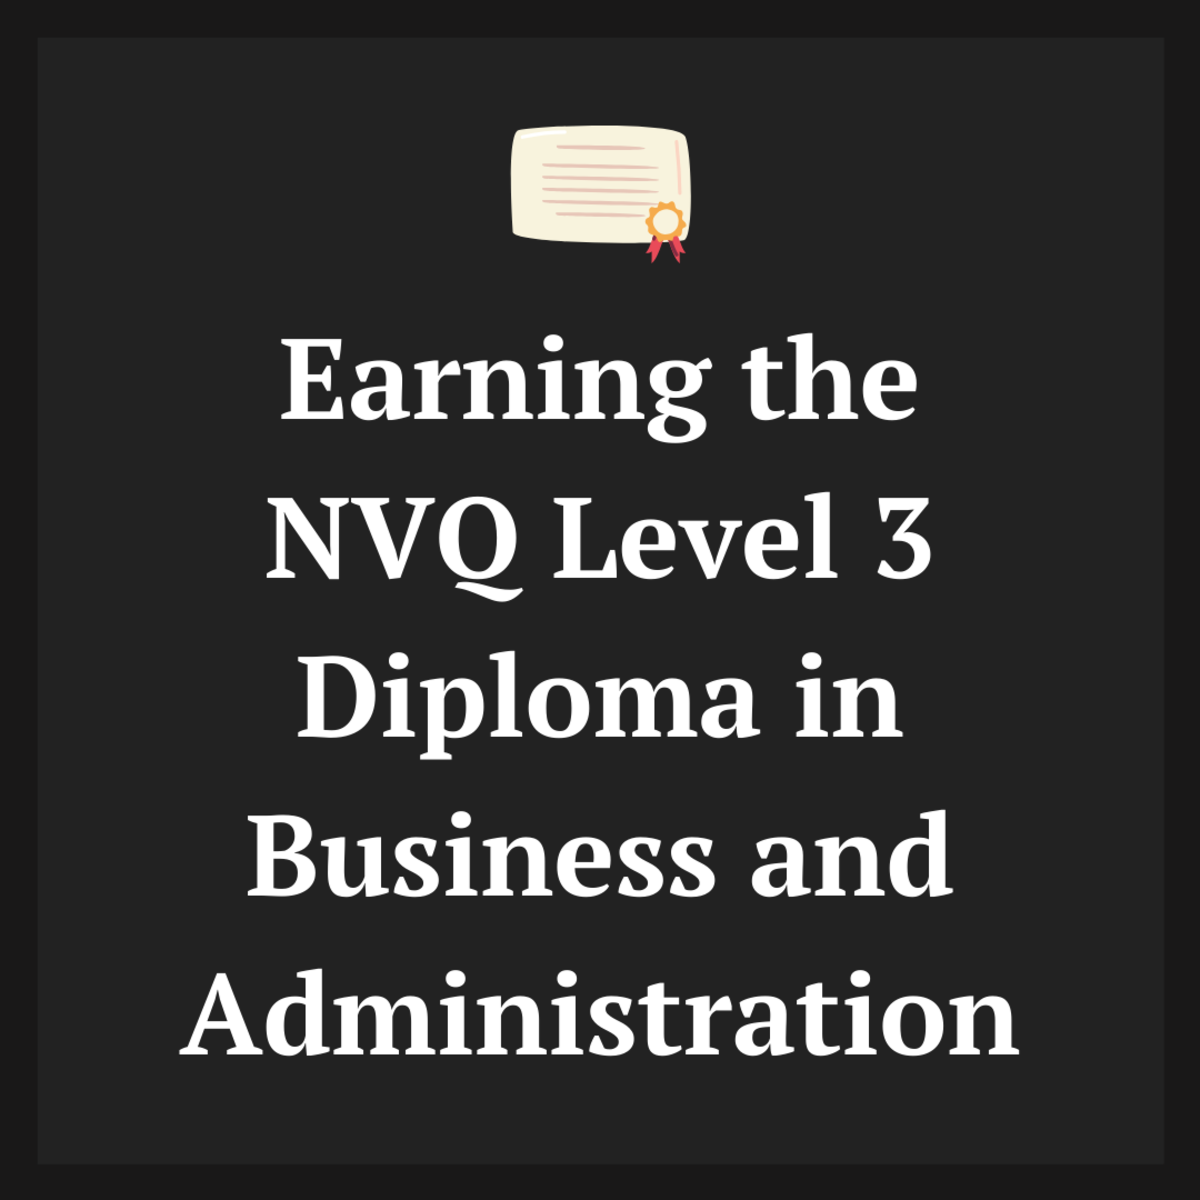 NVQ Level 3 Diploma in Business and Administration: Outline